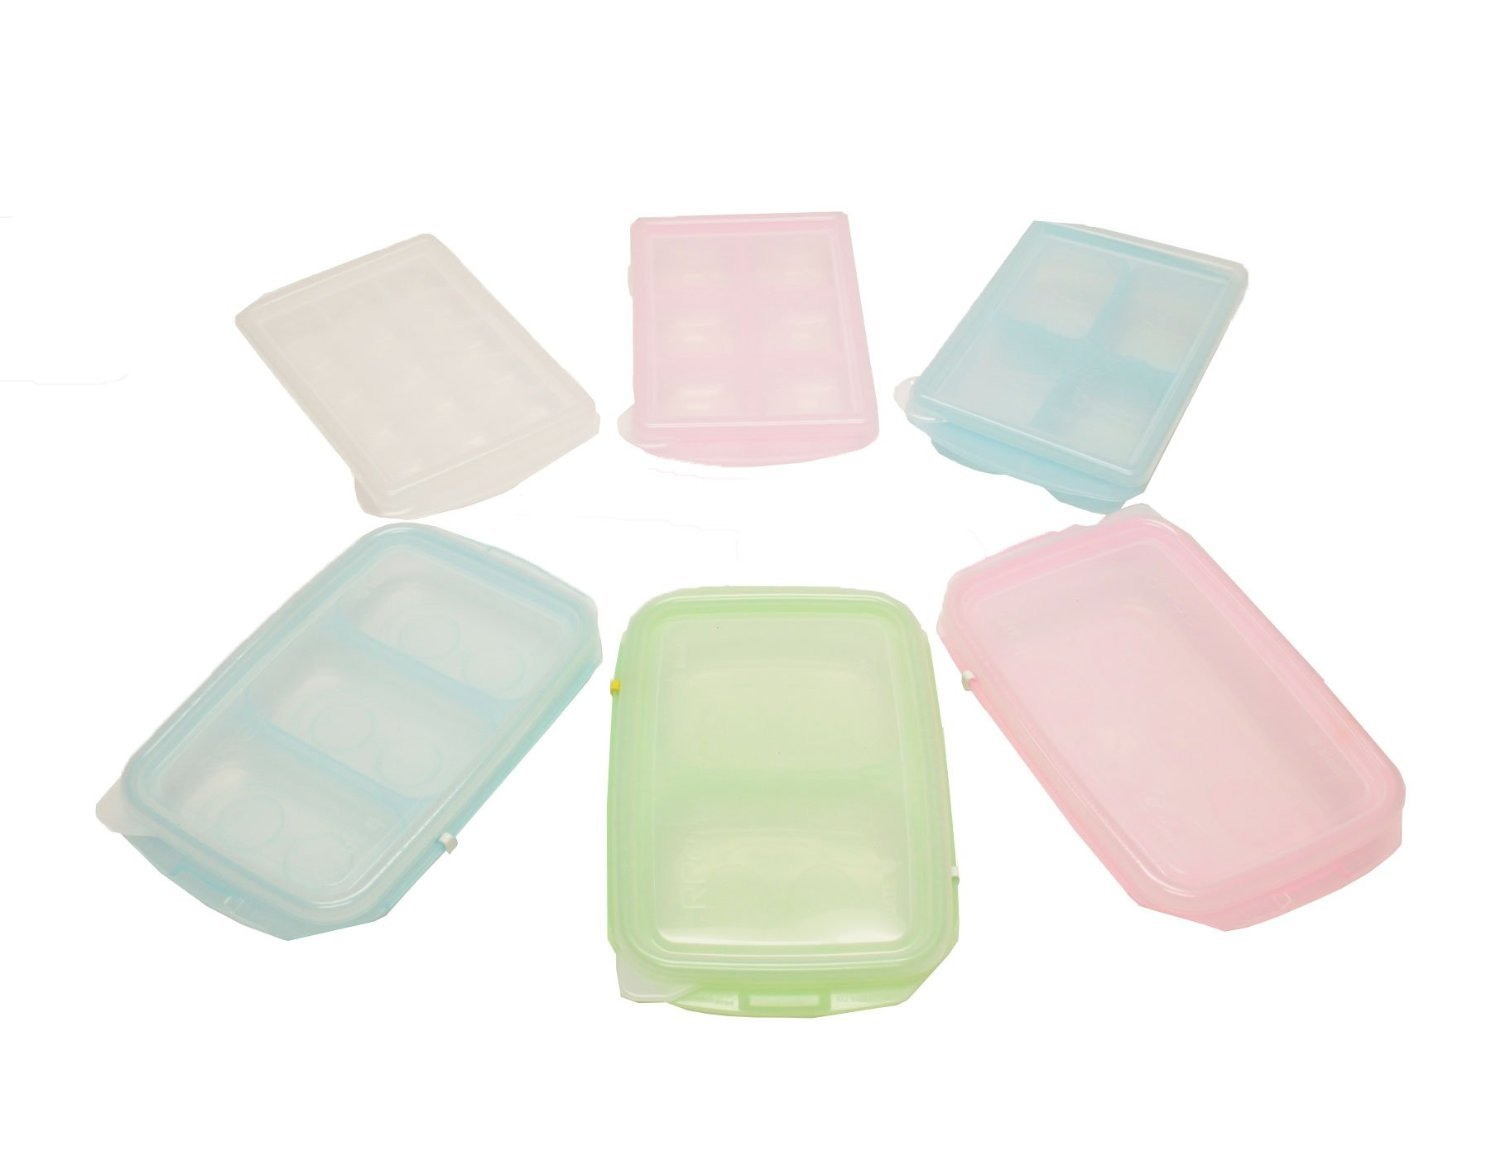 HSI Easily Pop Out 1, 2, 3, 4, 6, 15 Compartments Ice Cube, Baby Food sets, BPA-free PE Tray with Clear Lid in Multi Color, RRE Ice Cube Tray, Set of 6 by HSI (Image #1)